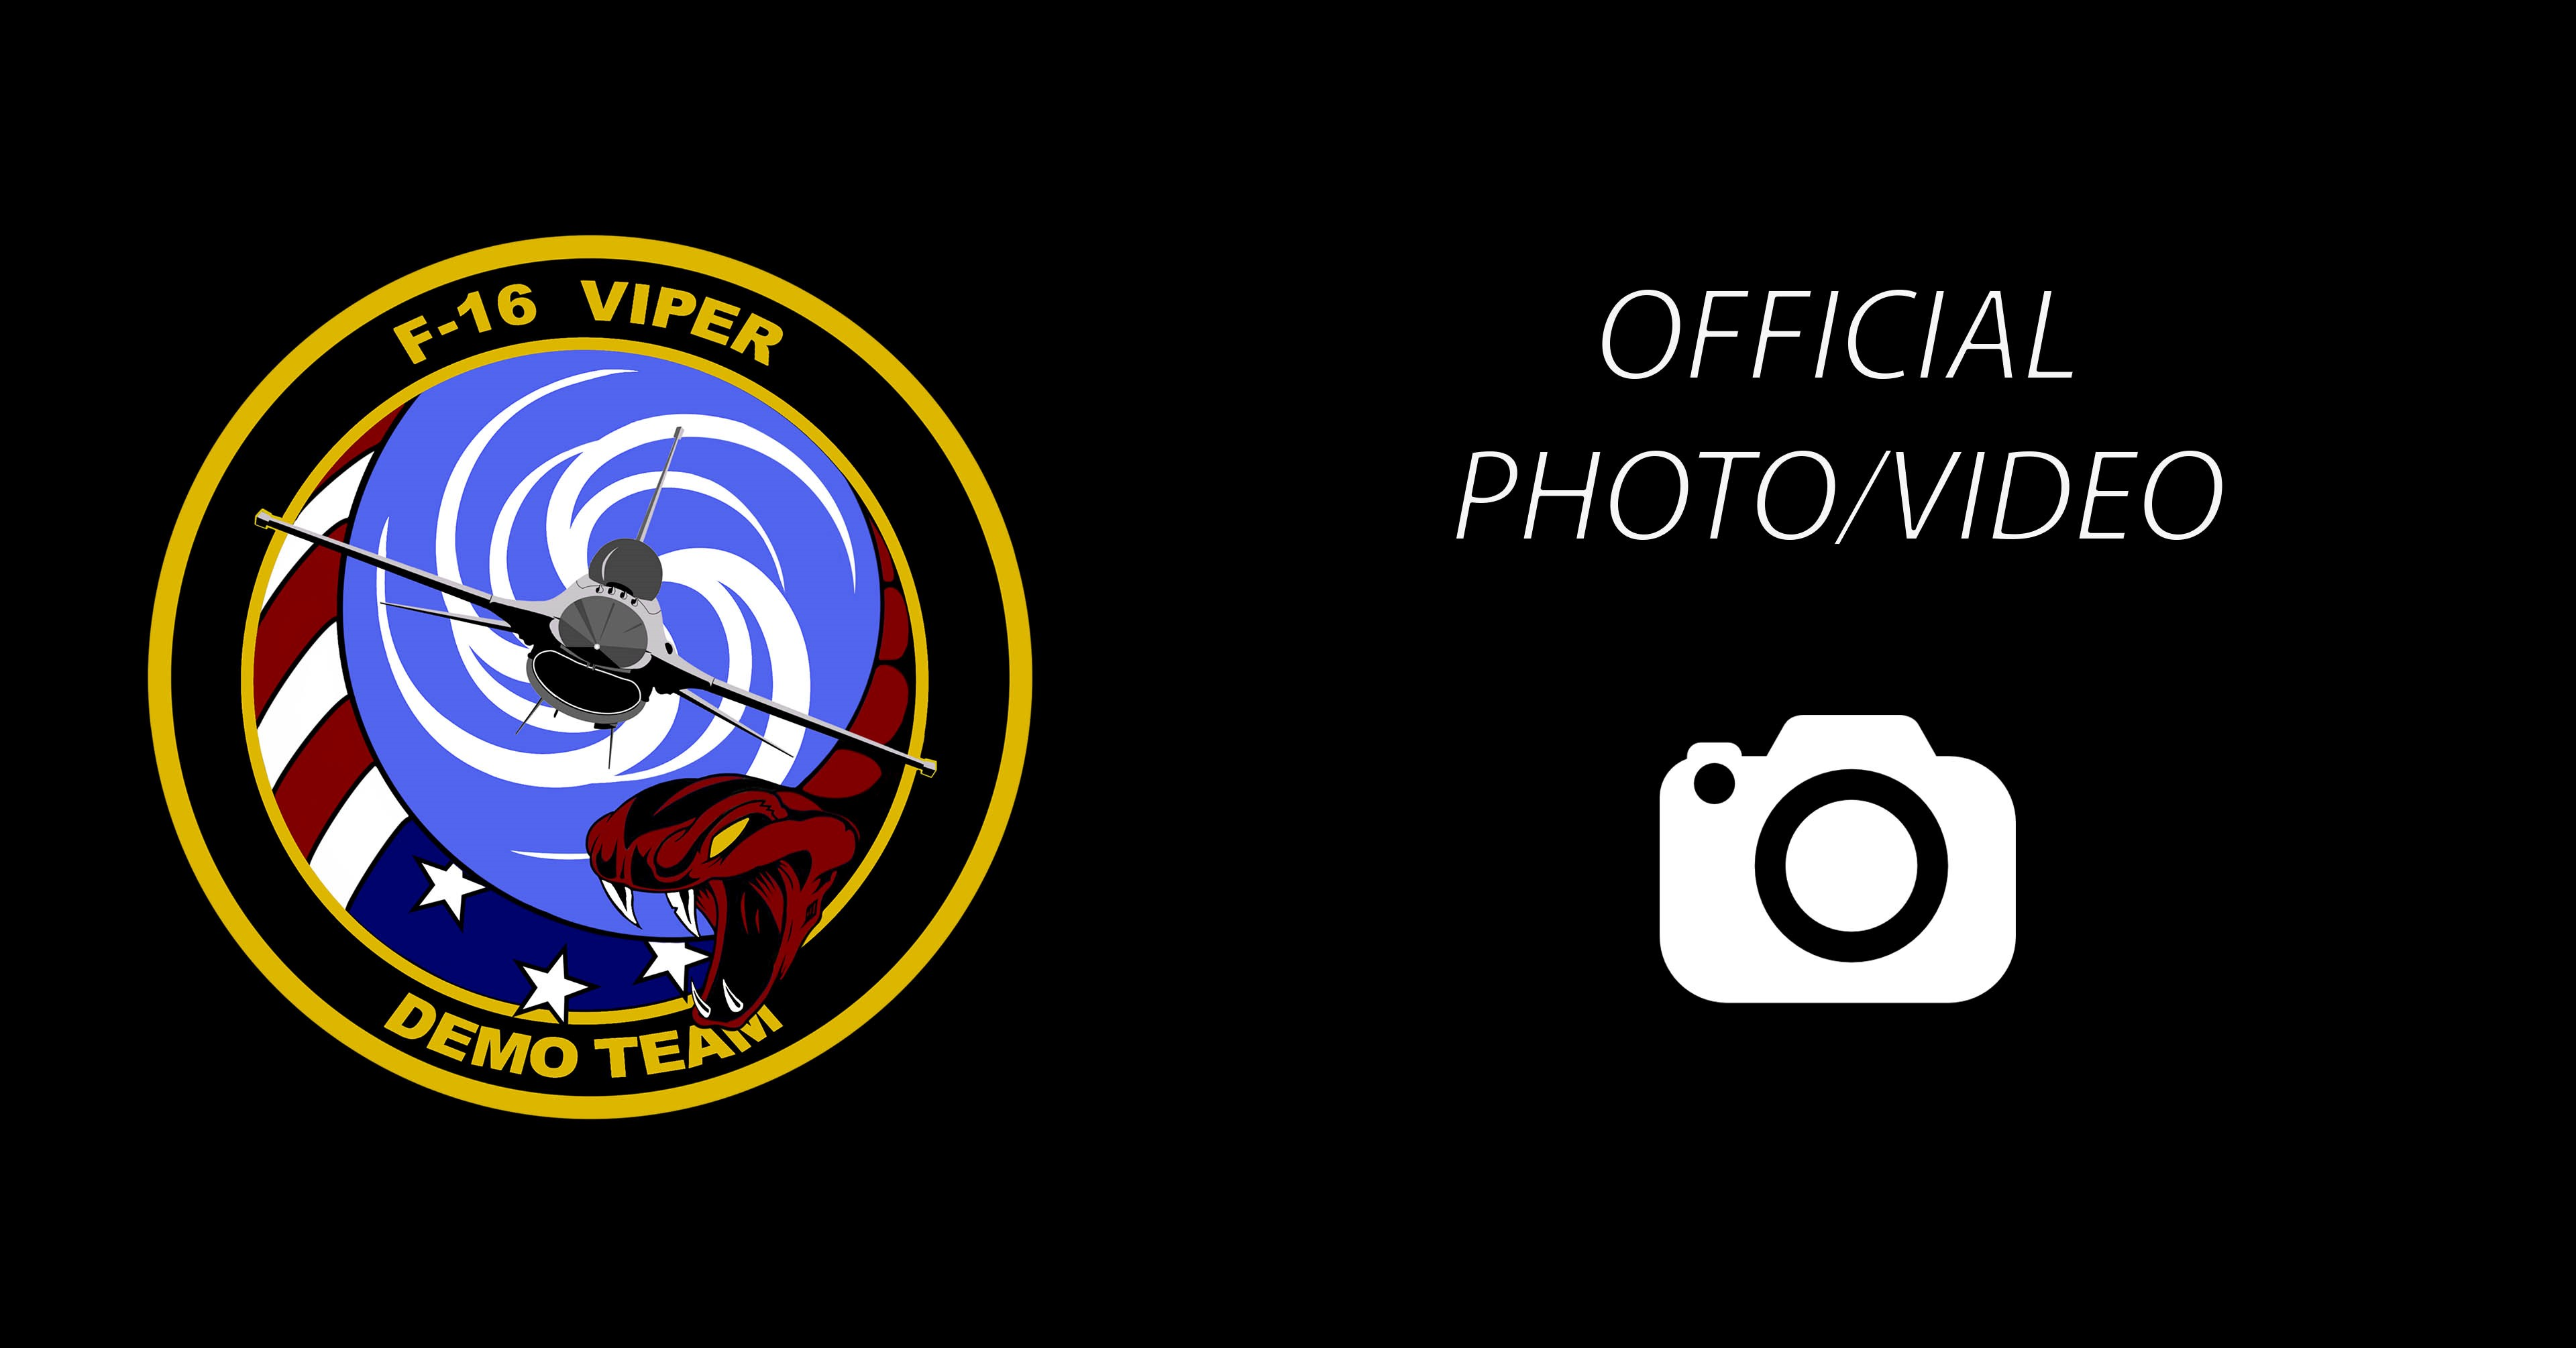 a graphic of the viper demo team logo, and a link to the official photo/video dvids page